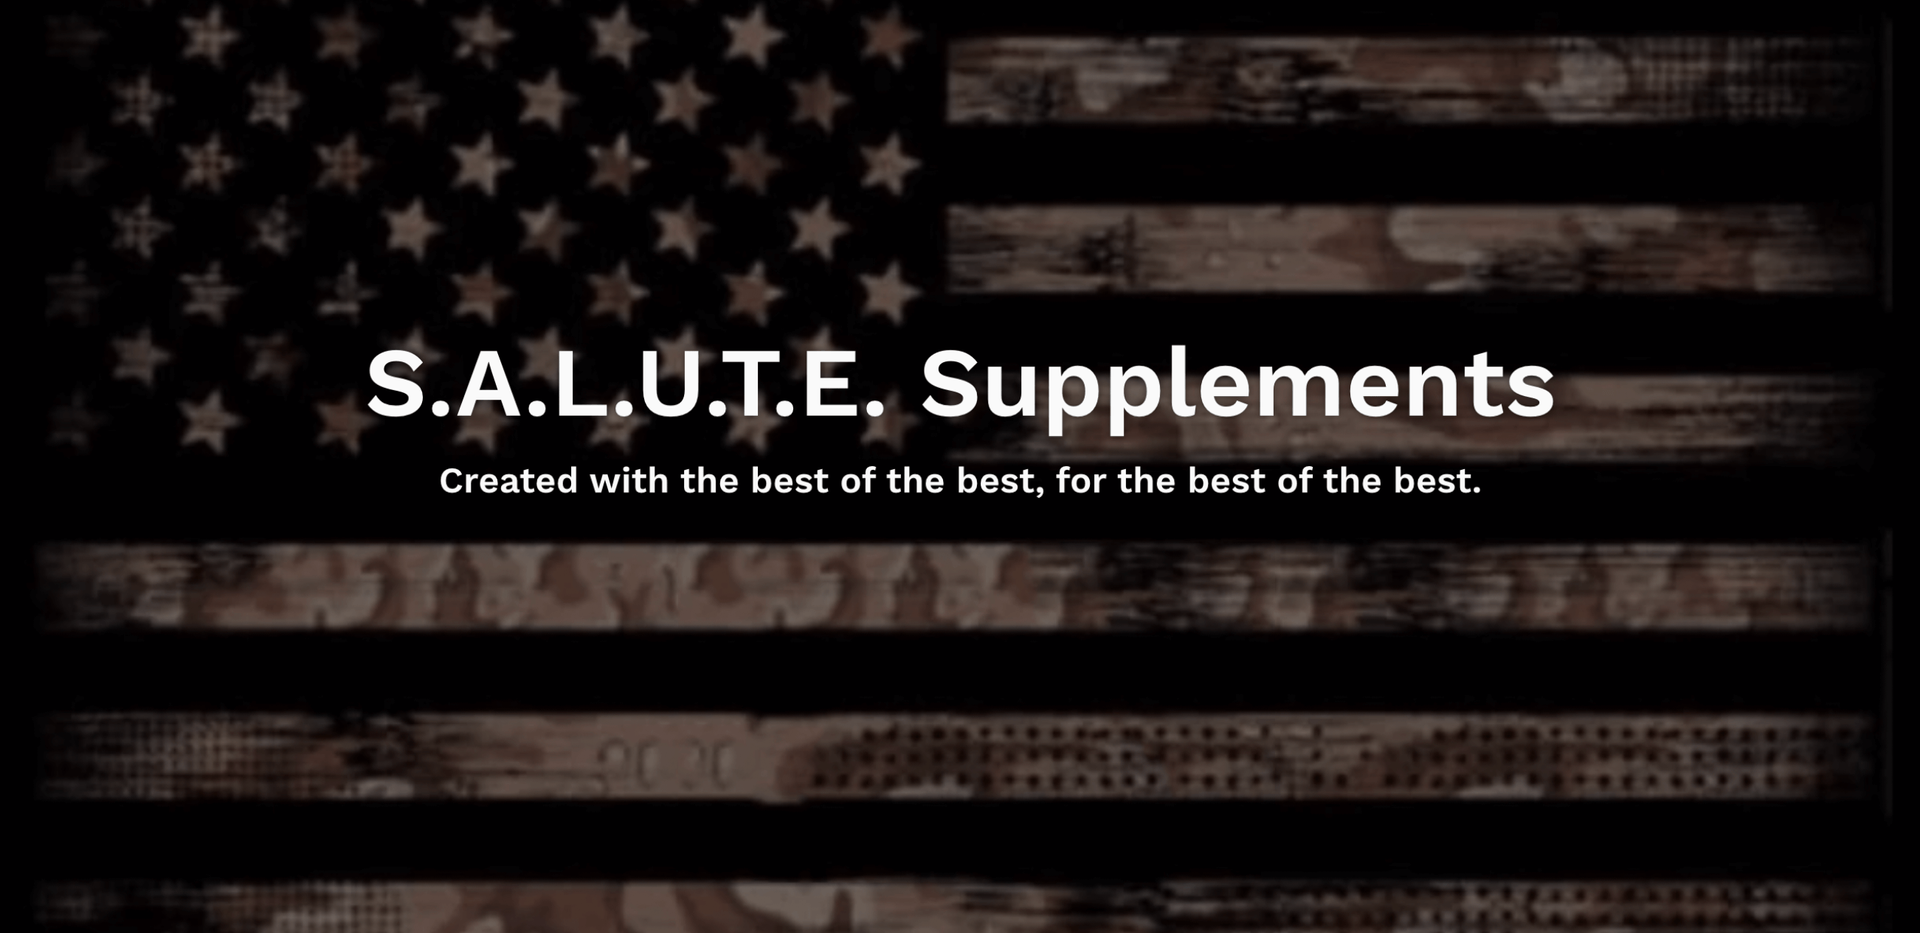 S.A.L.U.T.E. SUPPLEMENTS